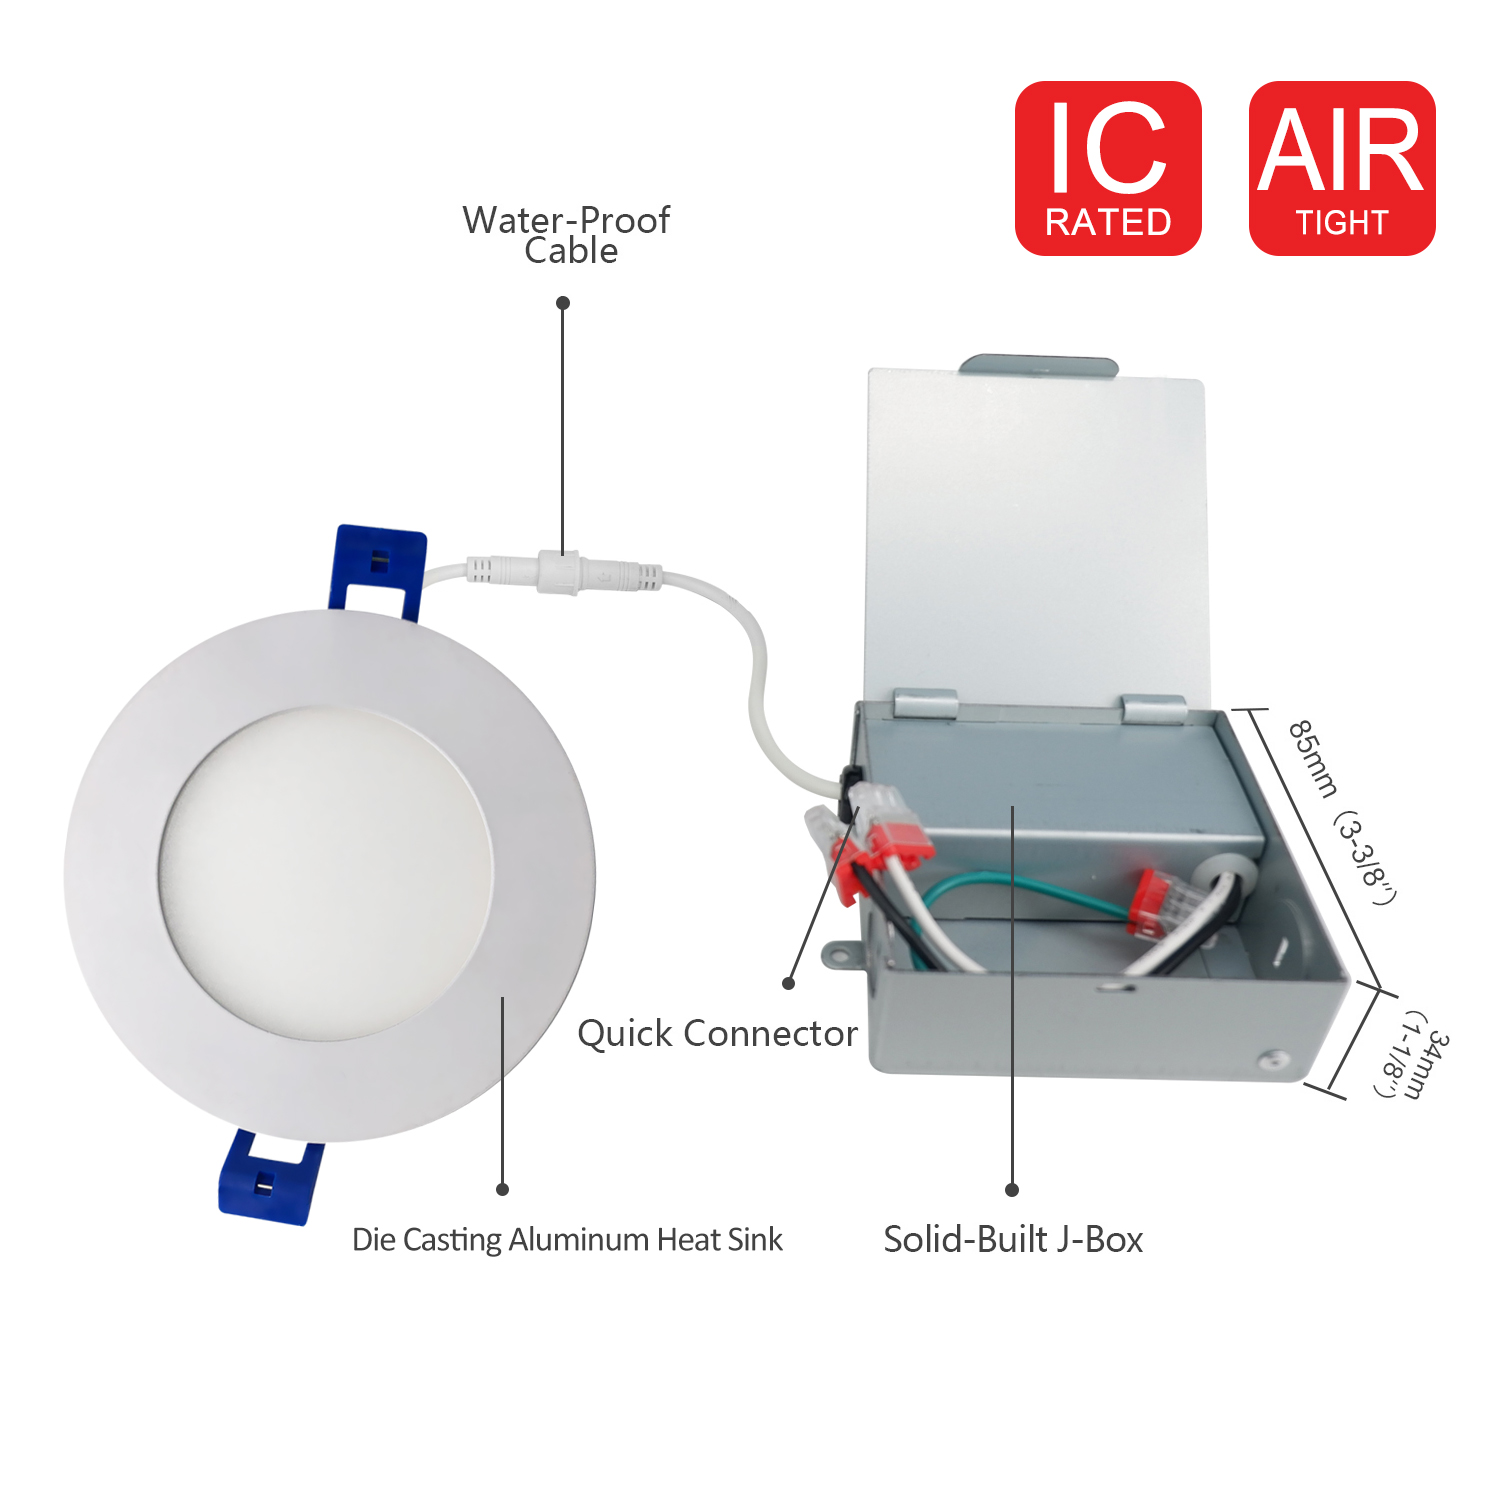 JULLISON LED Recessed Low Profile Slim Panel Light with Junction Box Air Tight,